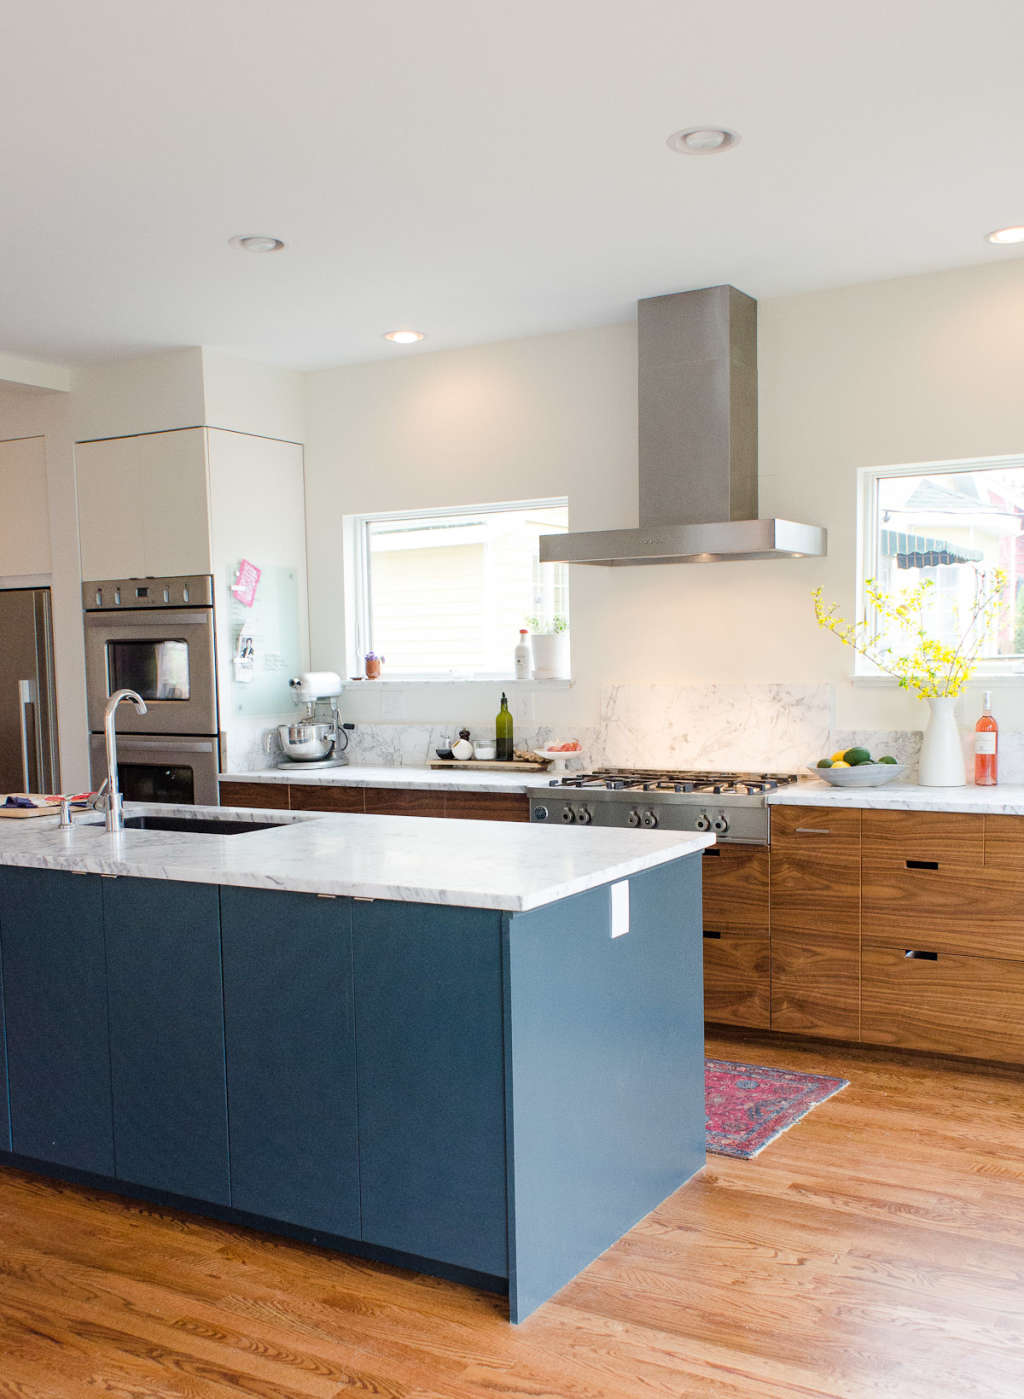 Most Popular Ikea Kitchen Cabinets: IKEA Kitchen Review - Remodel Cost, Cabinets Quality